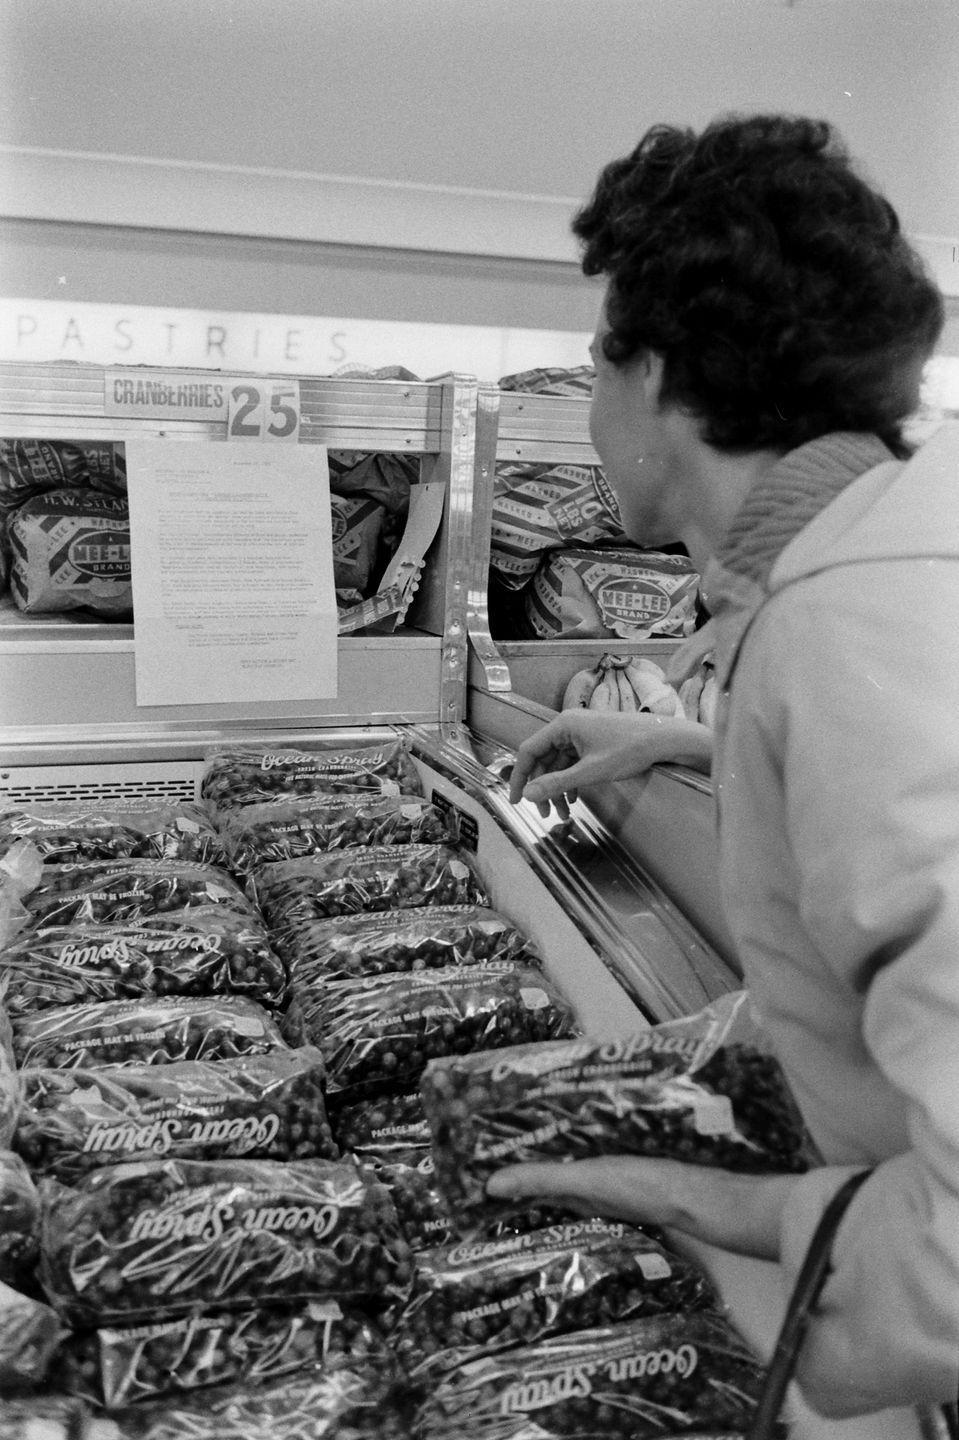 """<p>The invention of plastic film also gave rise to the trend of pre-wrapped vegetables. If you believe <a href=""""https://clickamericana.com/topics/culture-and-lifestyle/scenes-from-grocery-stores-supermarkets-of-yesteryear"""" rel=""""nofollow noopener"""" target=""""_blank"""" data-ylk=""""slk:this 1953 advert"""" class=""""link rapid-noclick-resp"""">this 1953 advert</a>, it's a better way to buy lettuce.</p>"""